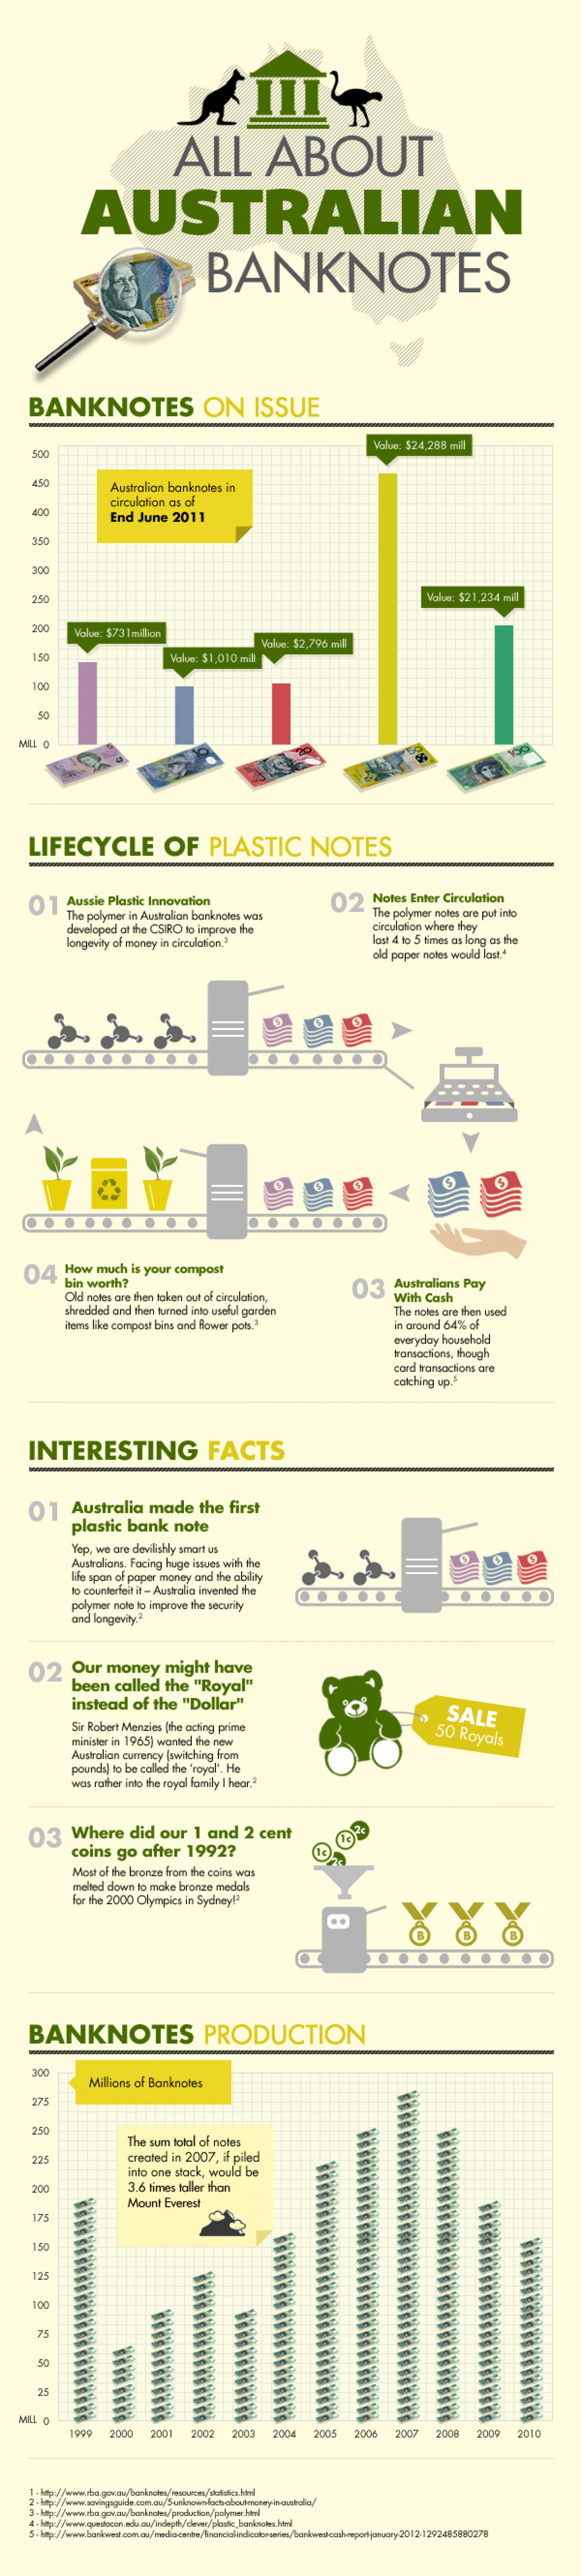 All About Australian Bank Notes Infographic